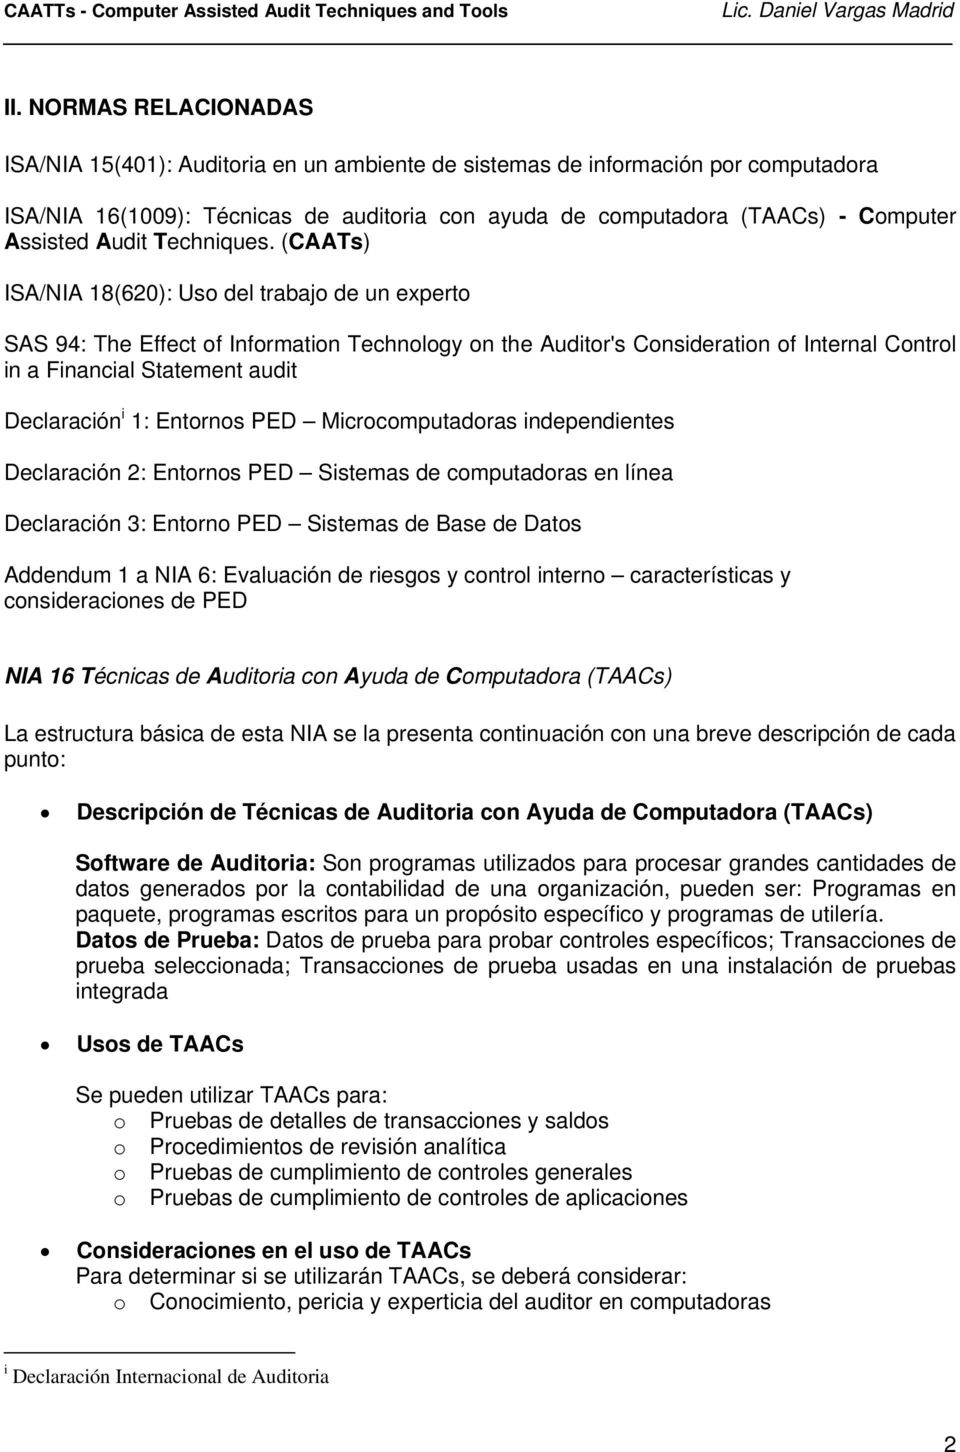 (CAATs) ISA/NIA 18(620): Uso del trabajo de un experto SAS 94: The Effect of Information Technology on the Auditor's Consideration of Internal Control in a Financial Statement audit Declaración i 1: